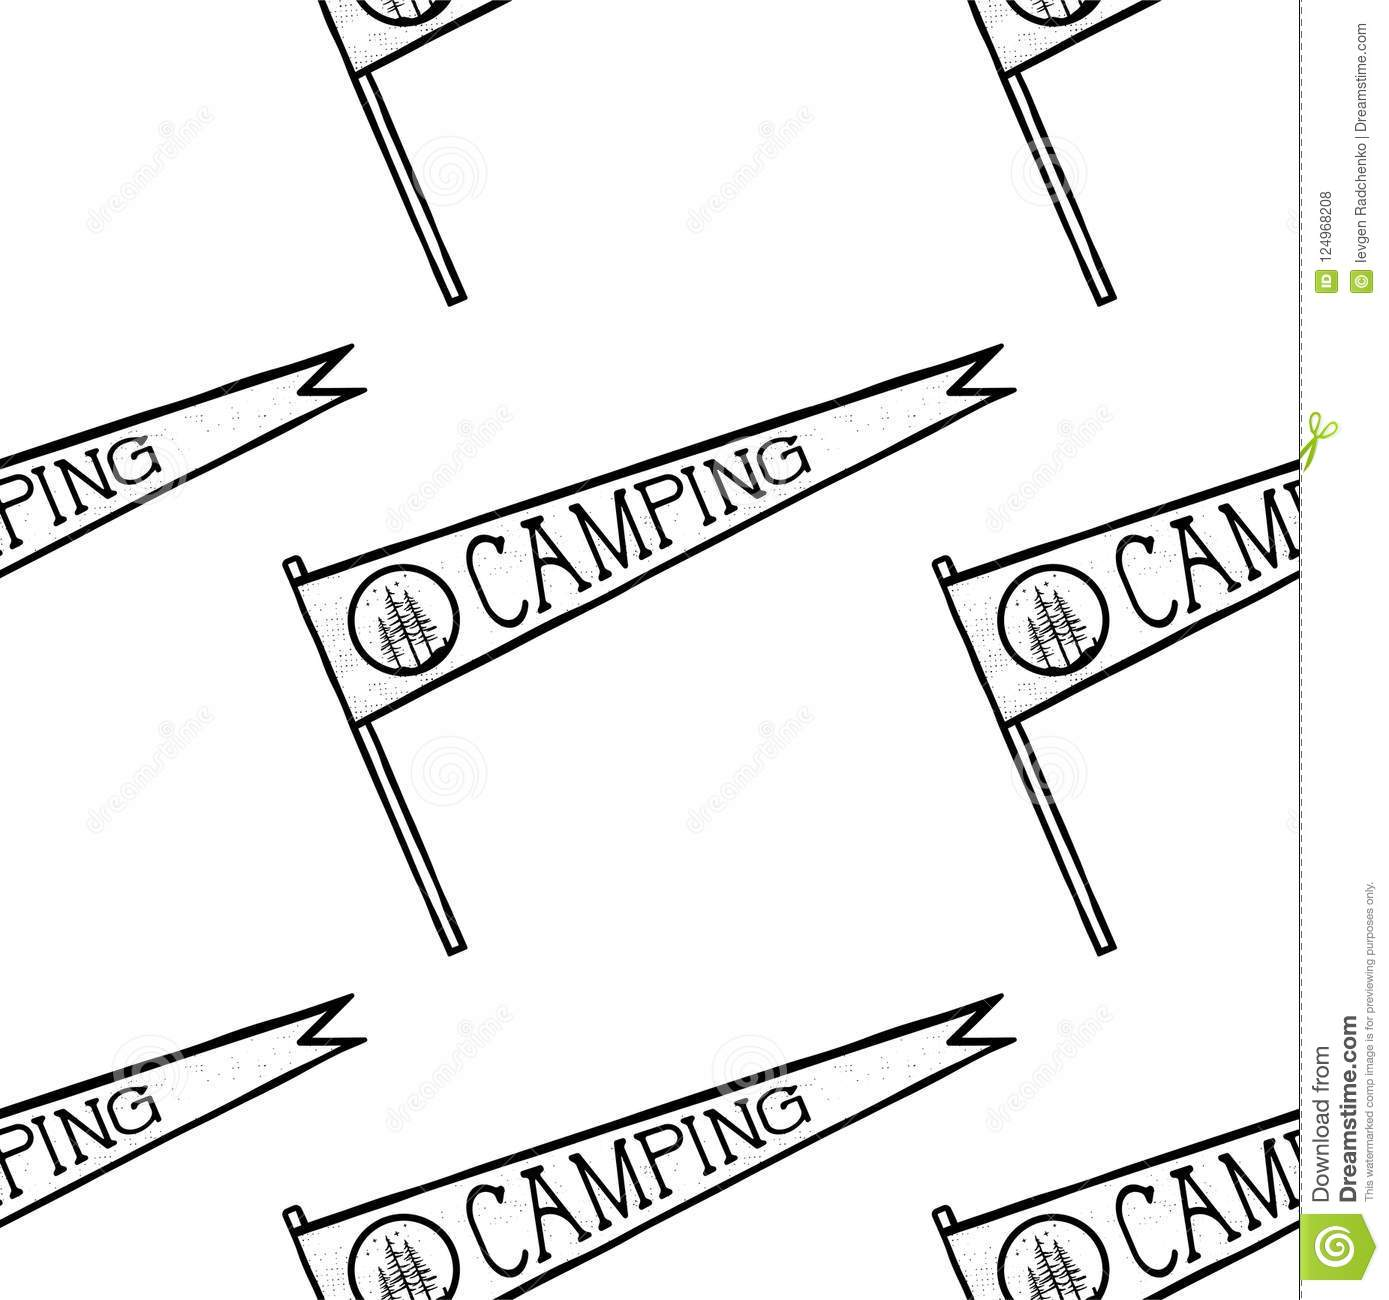 Camping Pennant Seamless Pattern Monochrome Line Art Hipster Style